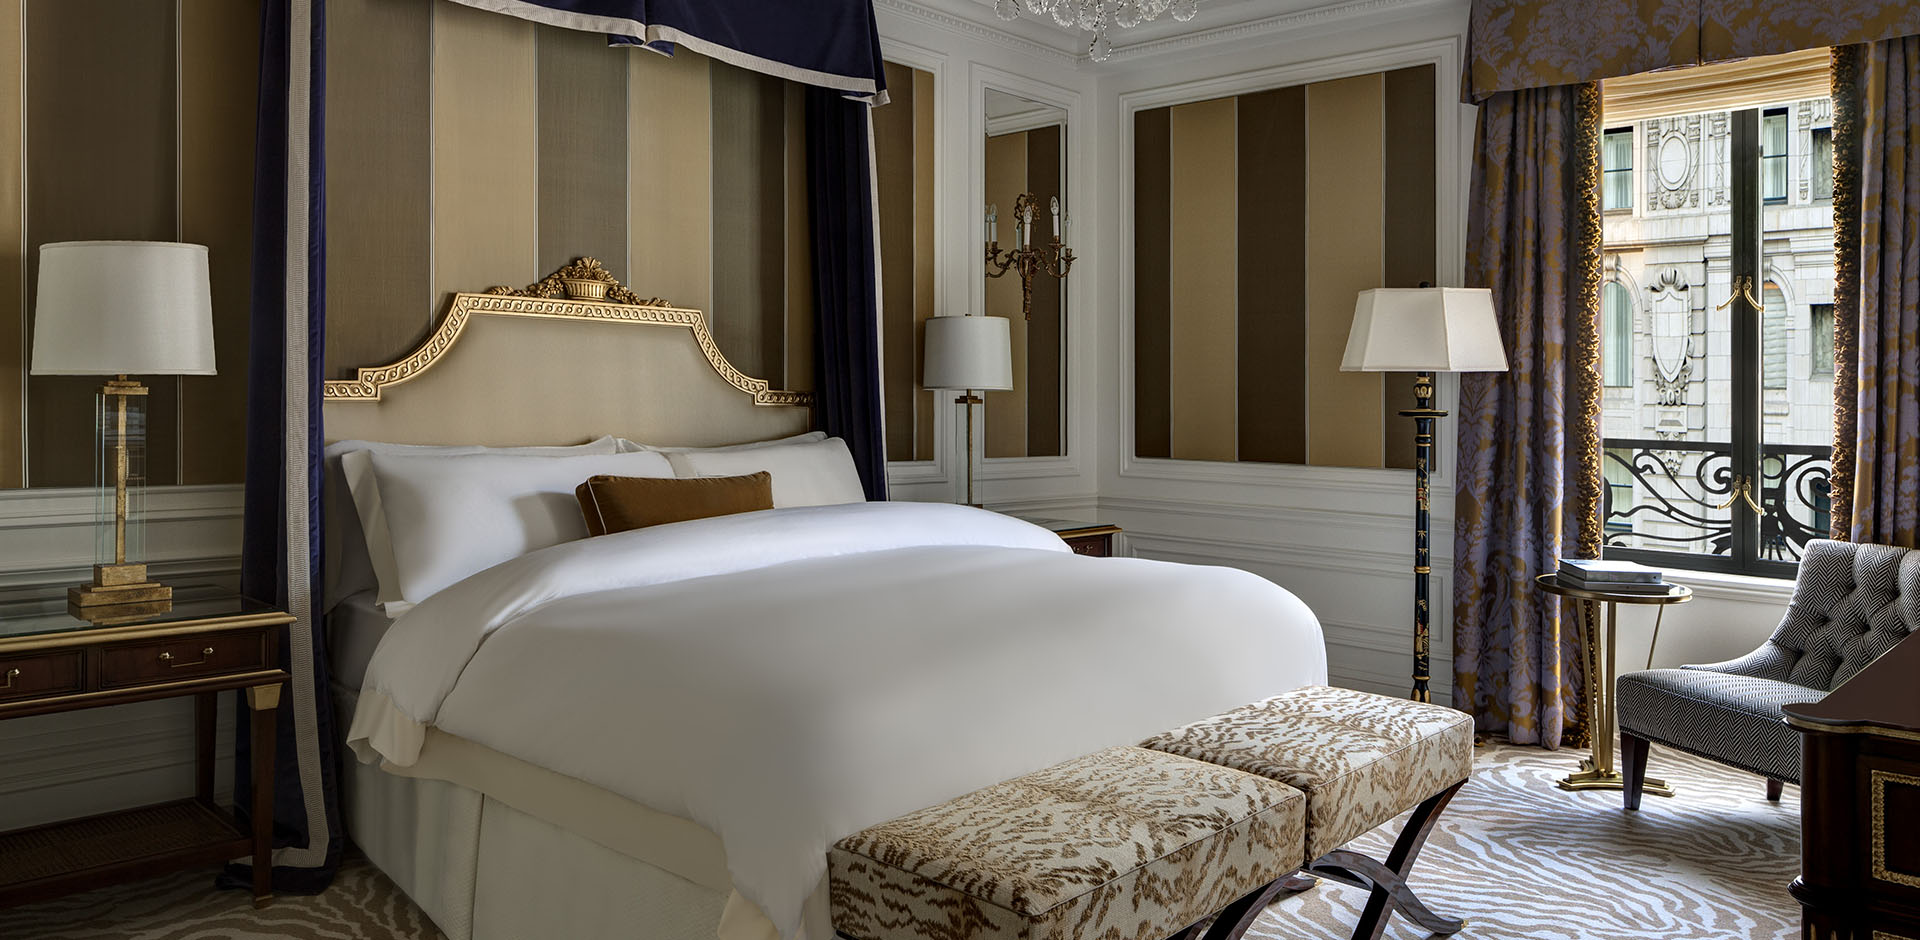 St Regis, New York - Royal Bedroom